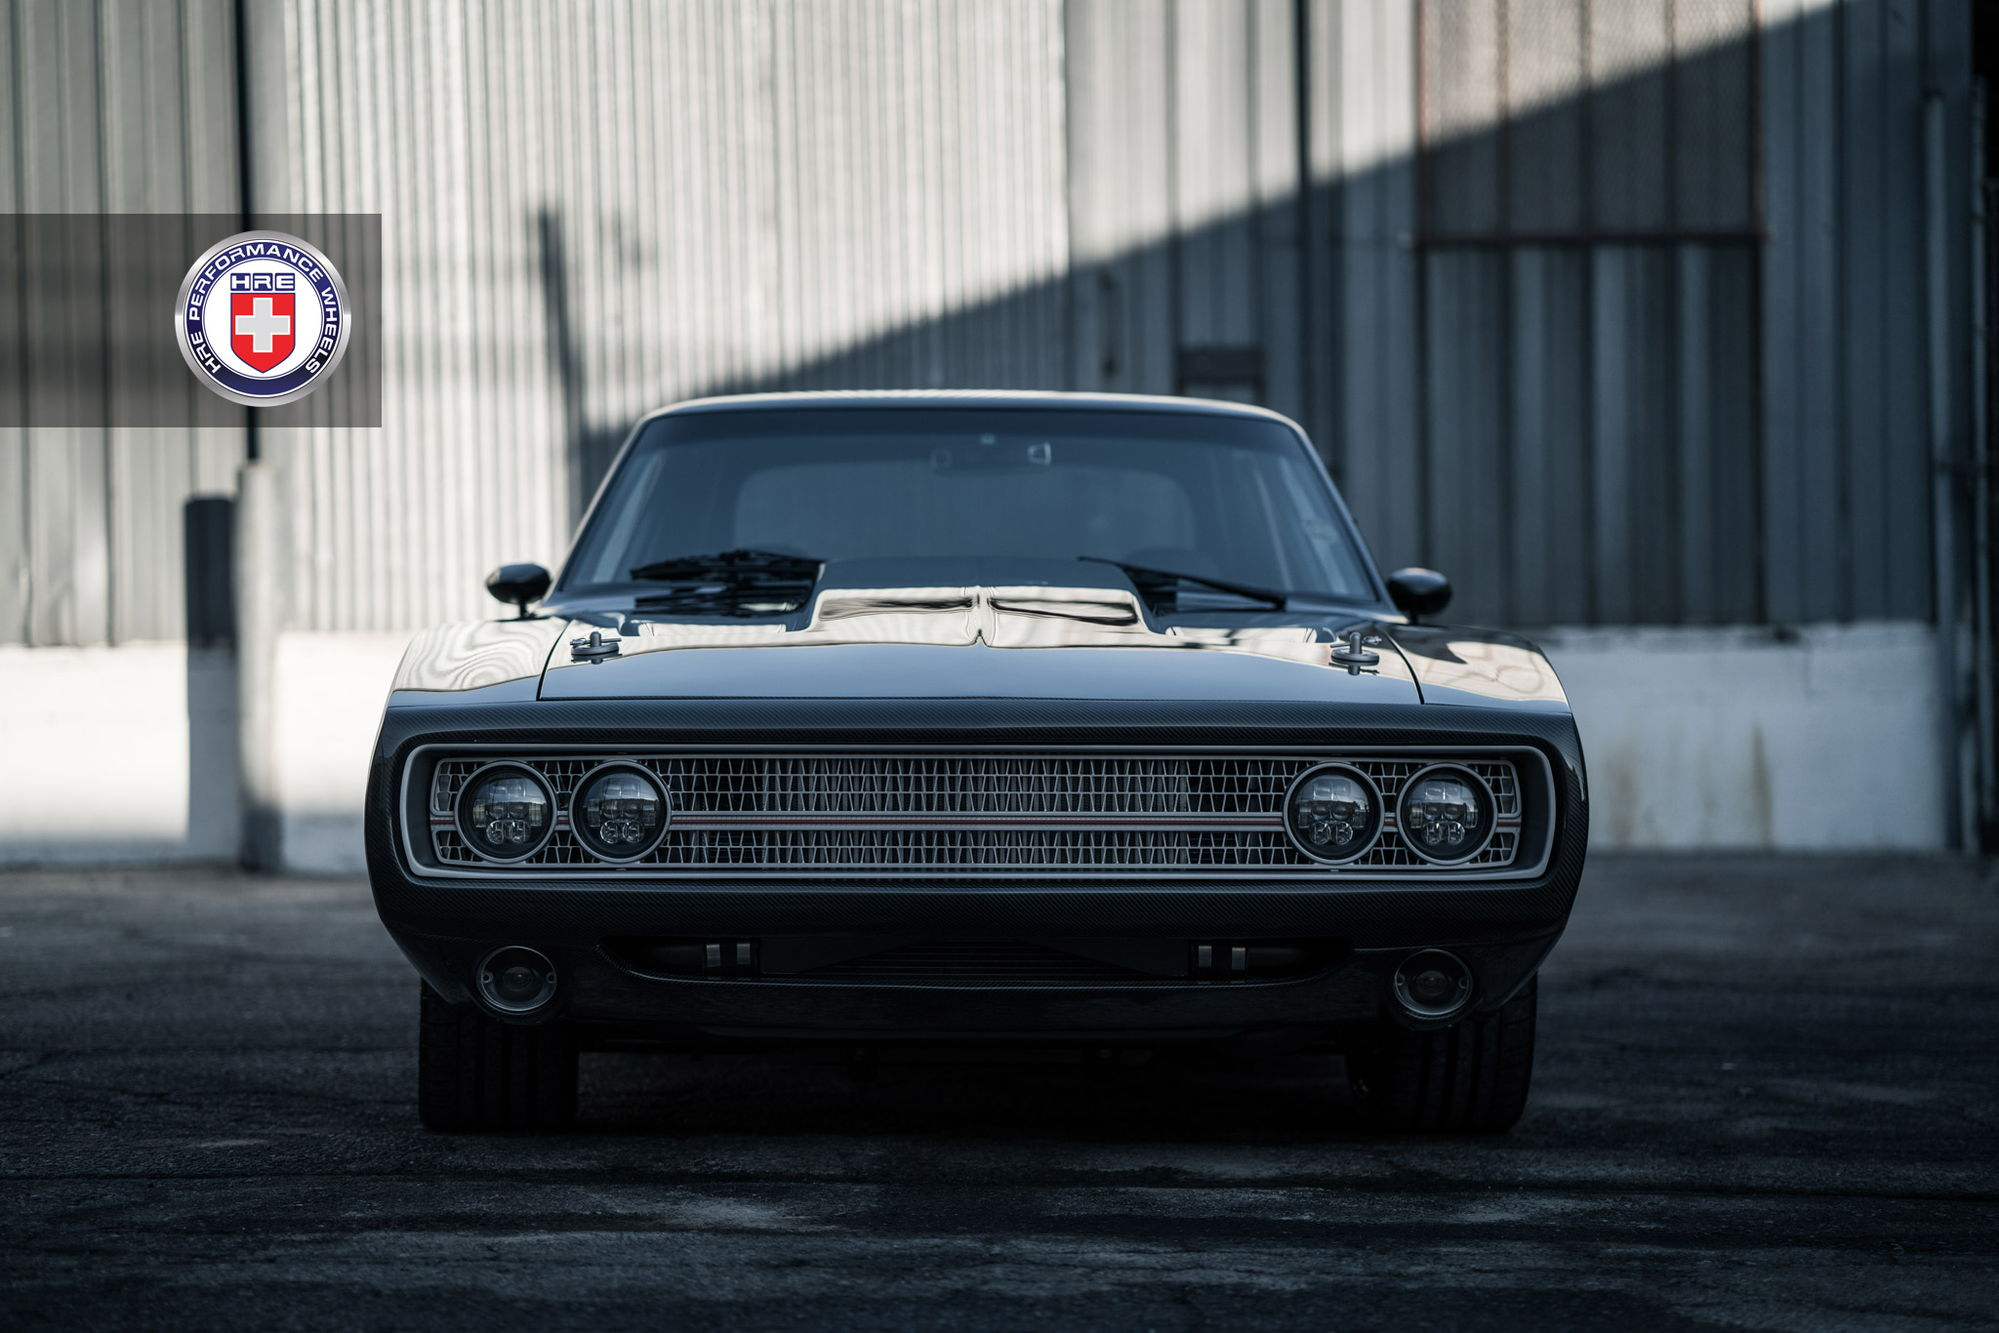 1968 Dodge Charger Wallpaper Cars 1650hp Dodge Charger Aka Tantrum